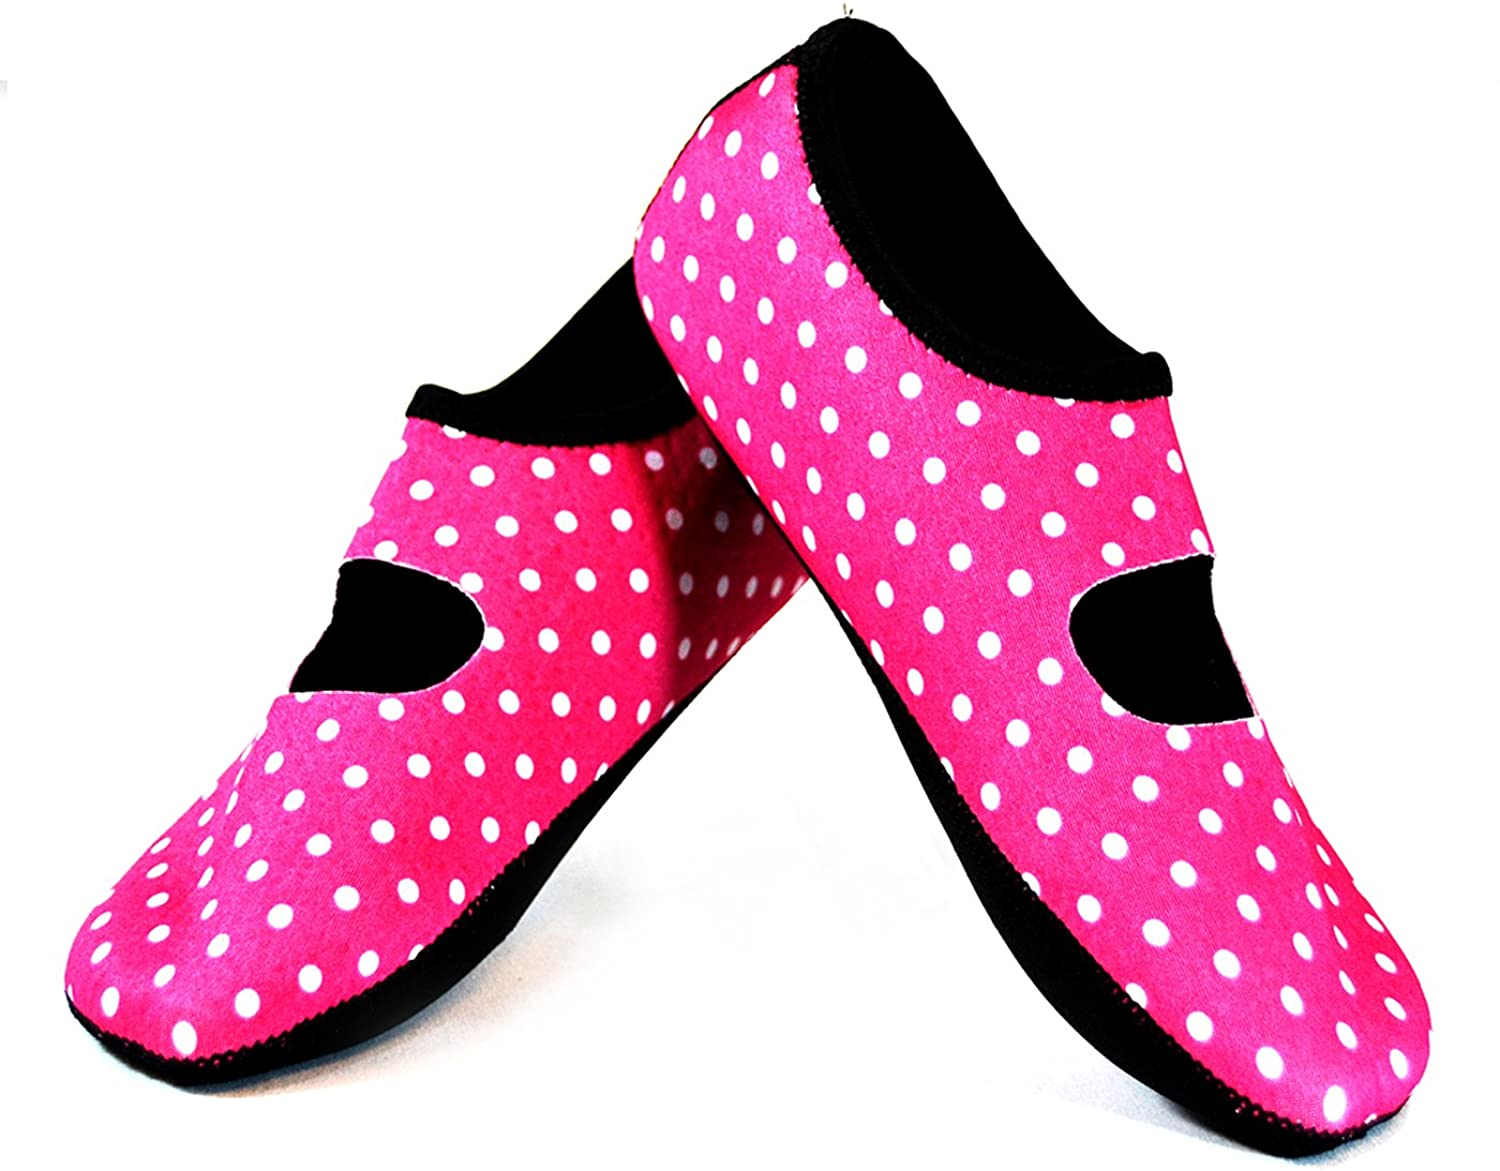 NuFoot Mary Janes Women's shoes, Best Foldable & Flexible Flats, Slipper Socks, Travel Slippers & Exercise shoes, Dance shoes, Yoga Socks, House shoes, Indoor Slippers, Pink Polka Dots, Large